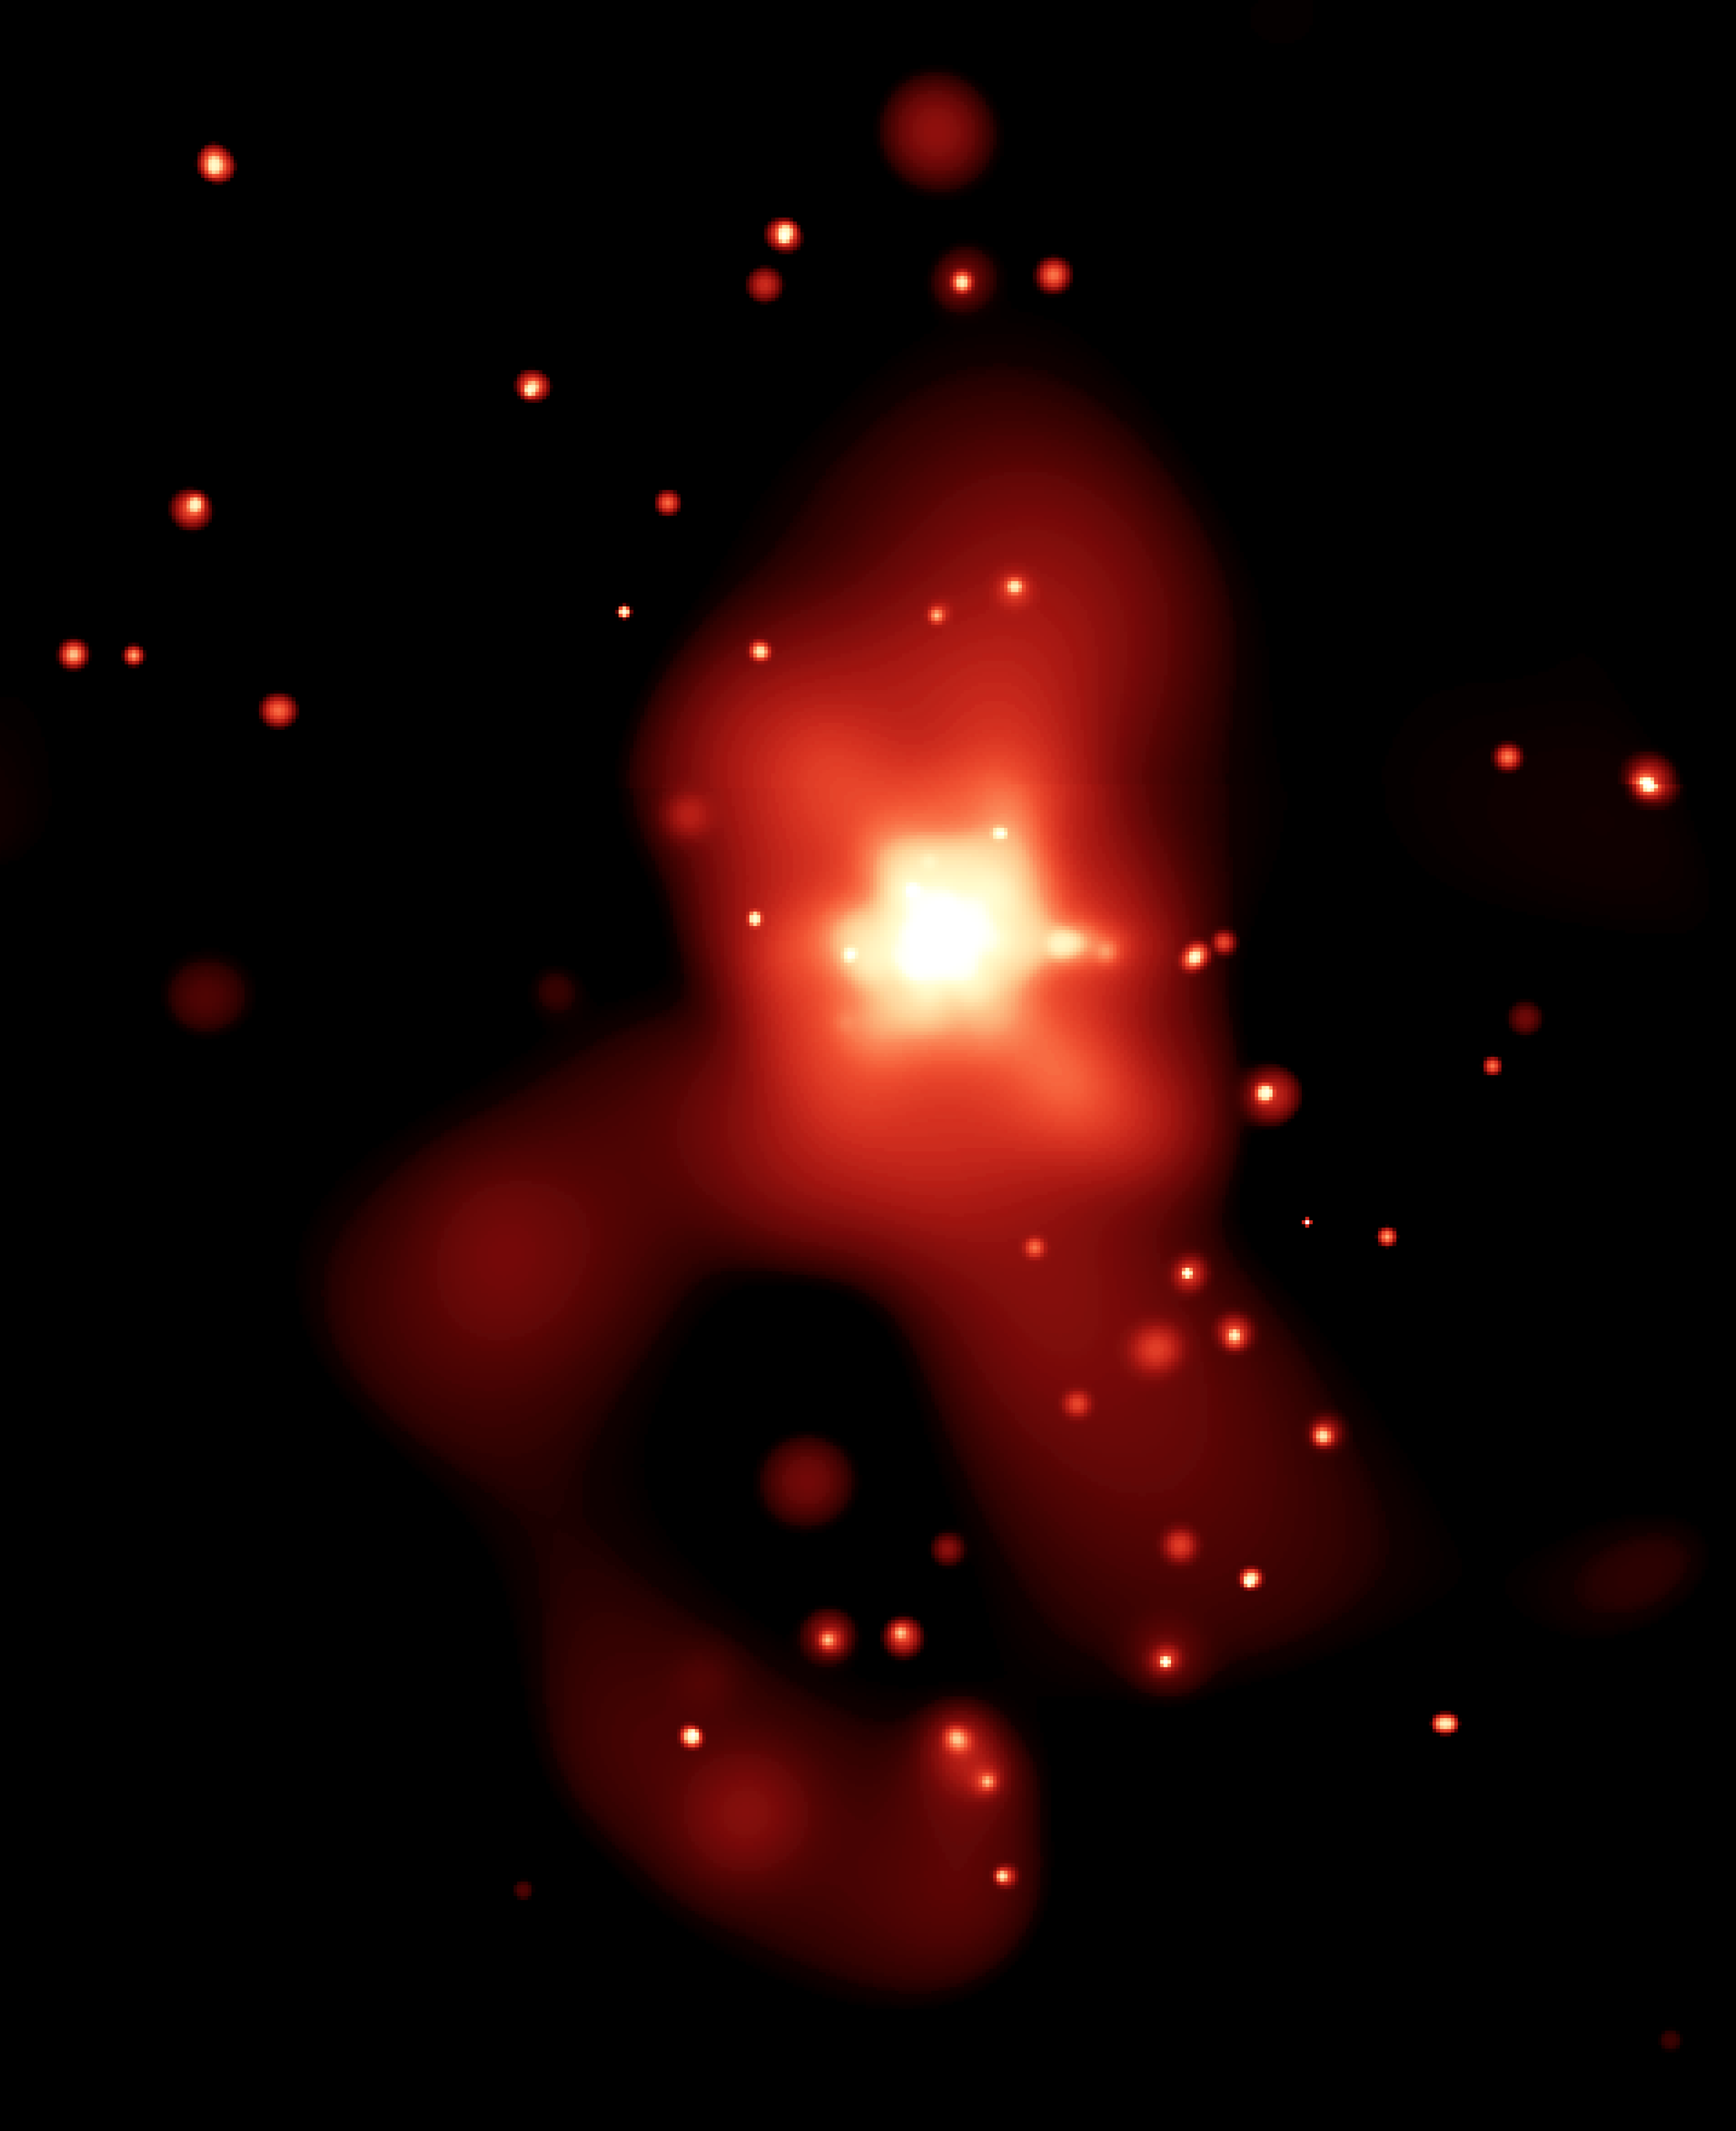 File:NGC 4261 X-ray.png - Wikimedia Commons for Red Light Rays Png  103wja